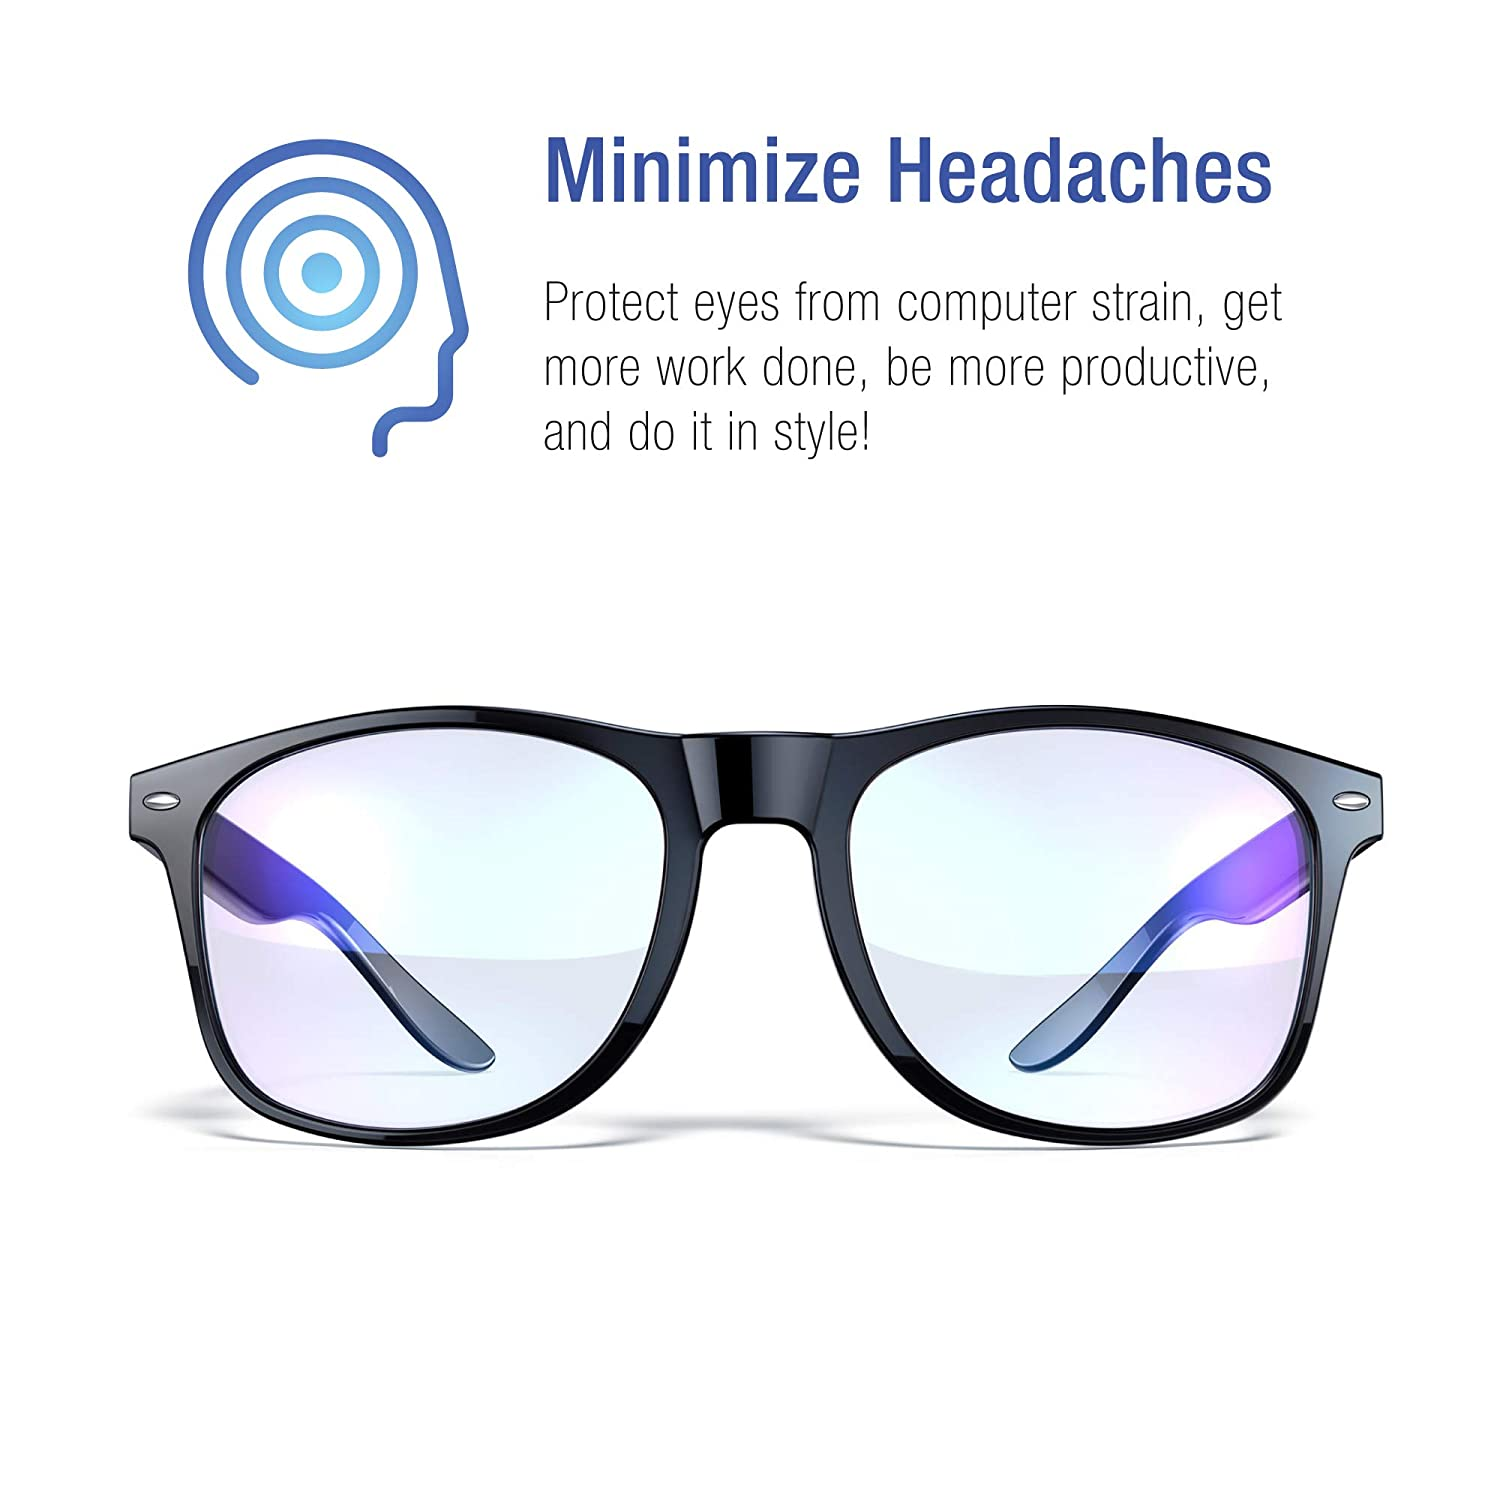 67e6e118ac16 Amazon.com: Blue Light Blocking Glasses - Gamer Glasses, Filter Blue Light  from LCD/LED Screen and Computer, Eyewear for Deep Sleep and Helps Prevent  Eye ...